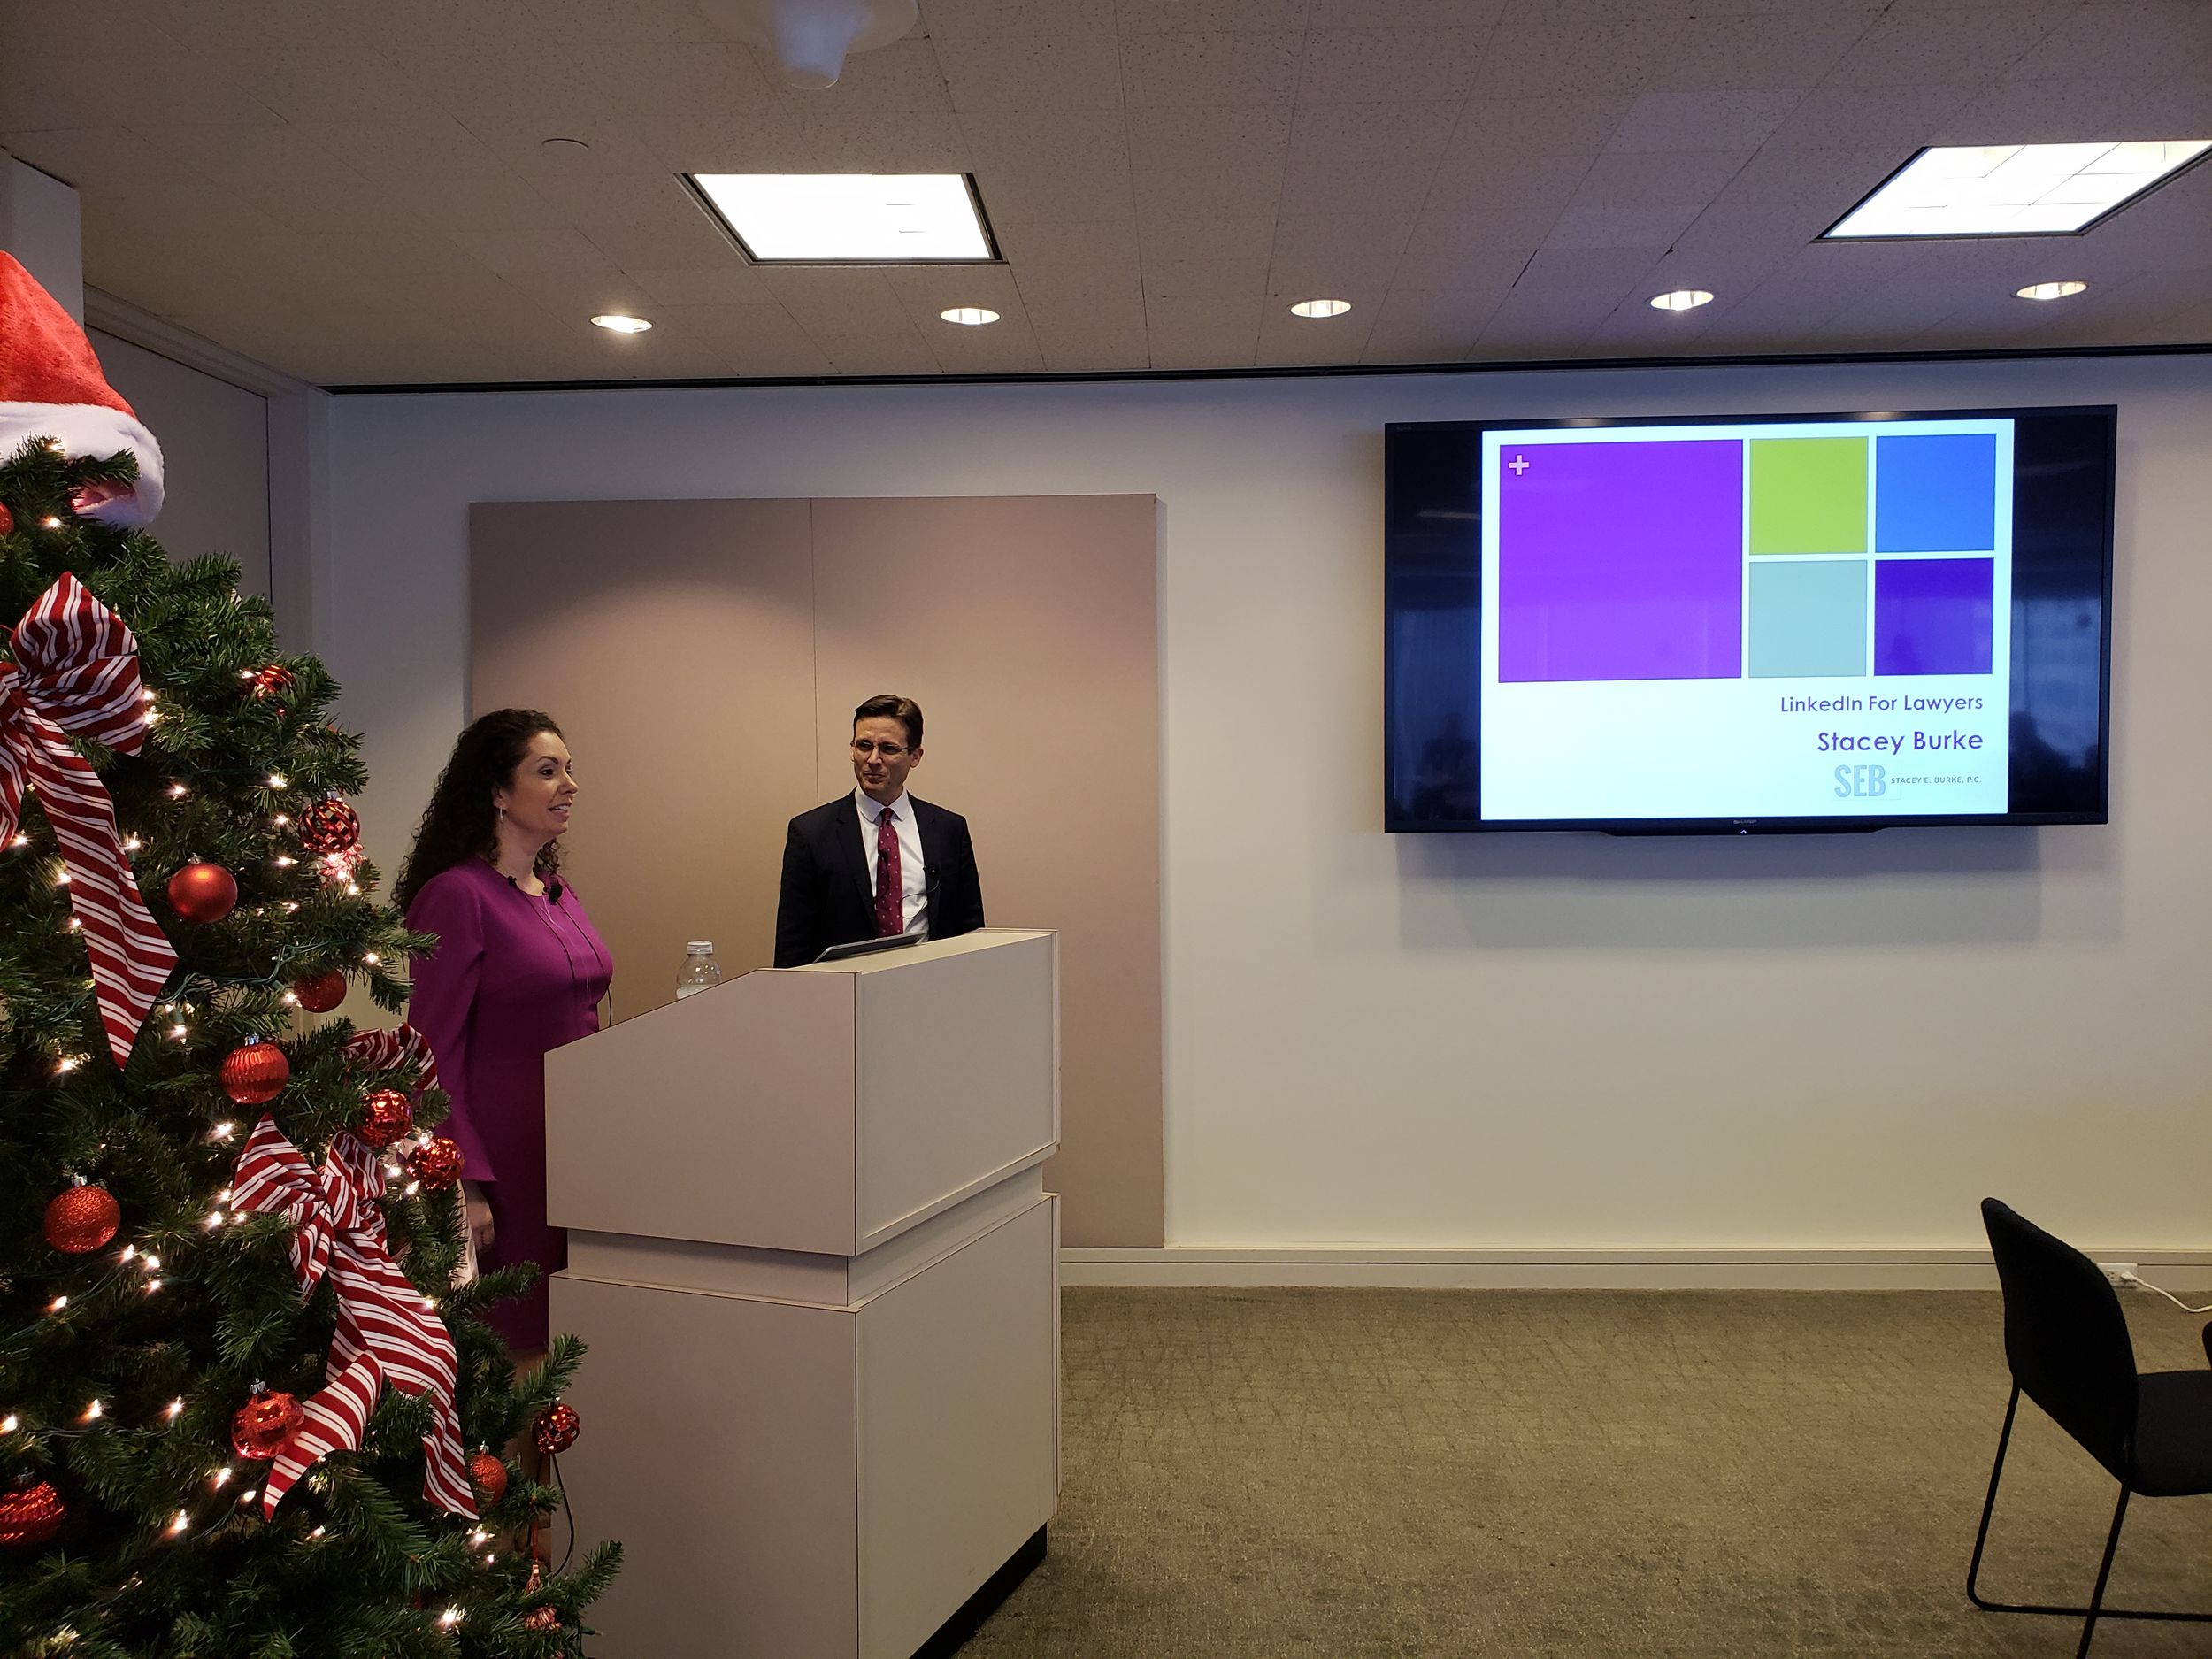 Two speakers, a man and a woman, stand at a podium in a corner, facing the viewer's right. In the foreground is a Christmas tree. Adjacent to the speakers, hanging on the wall, is a projected screen.